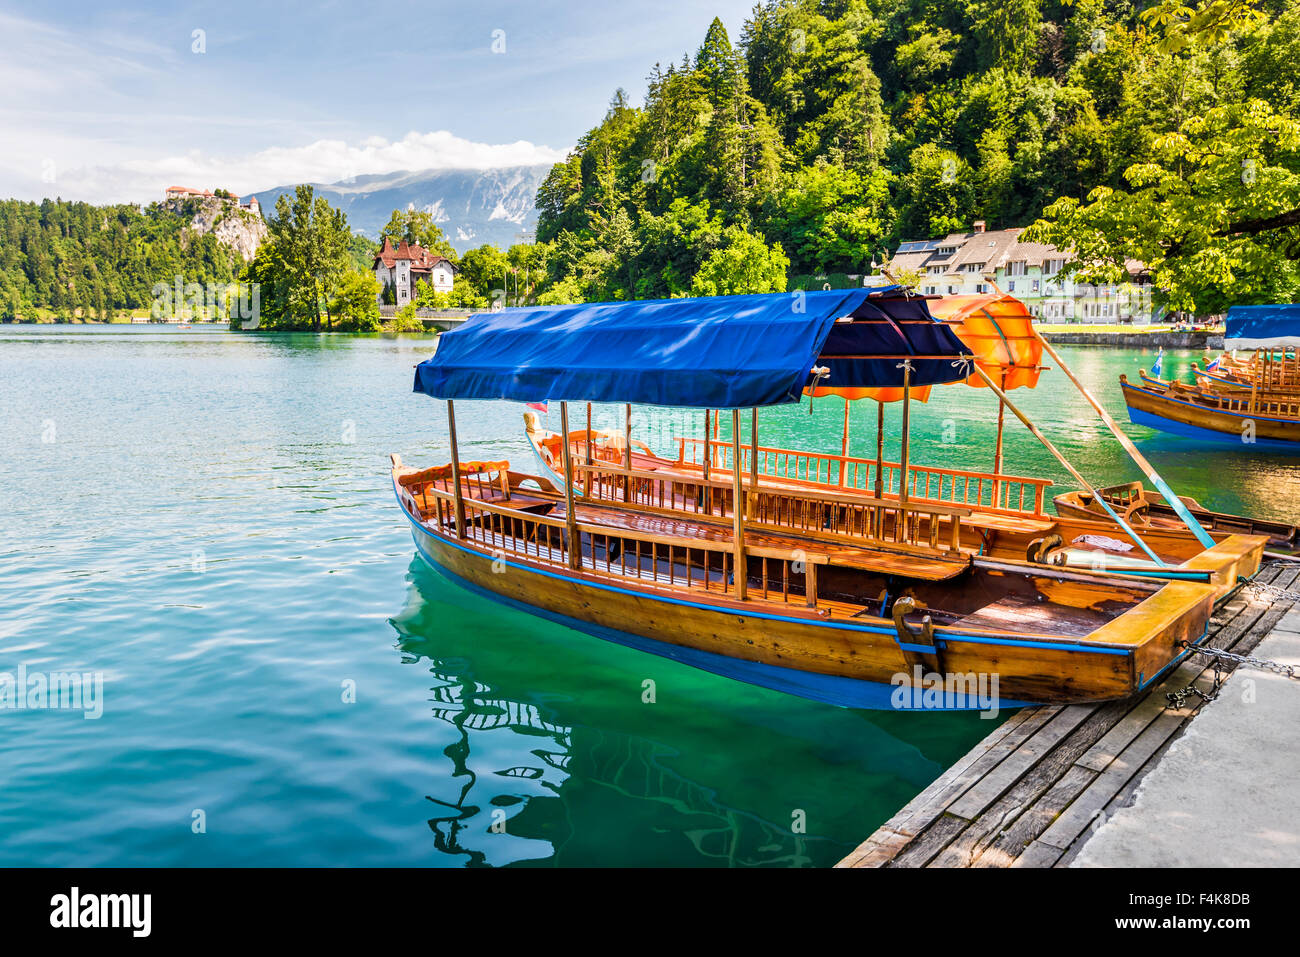 Wooden Tourist Boat on Shore of Bled Lake, Slovenia with Bled Castle in Background - Stock Image